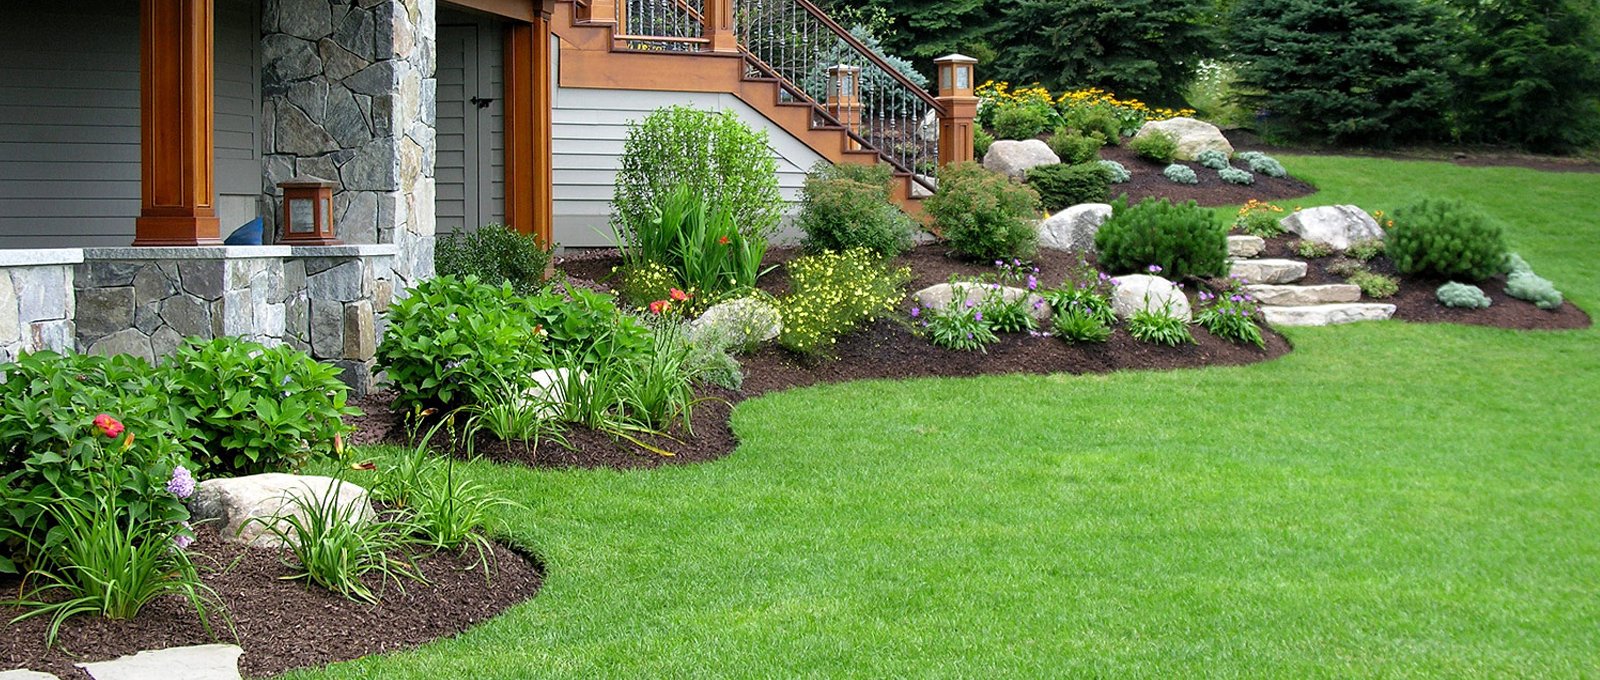 A masterful approach to commercial and<br> residential landscaping.